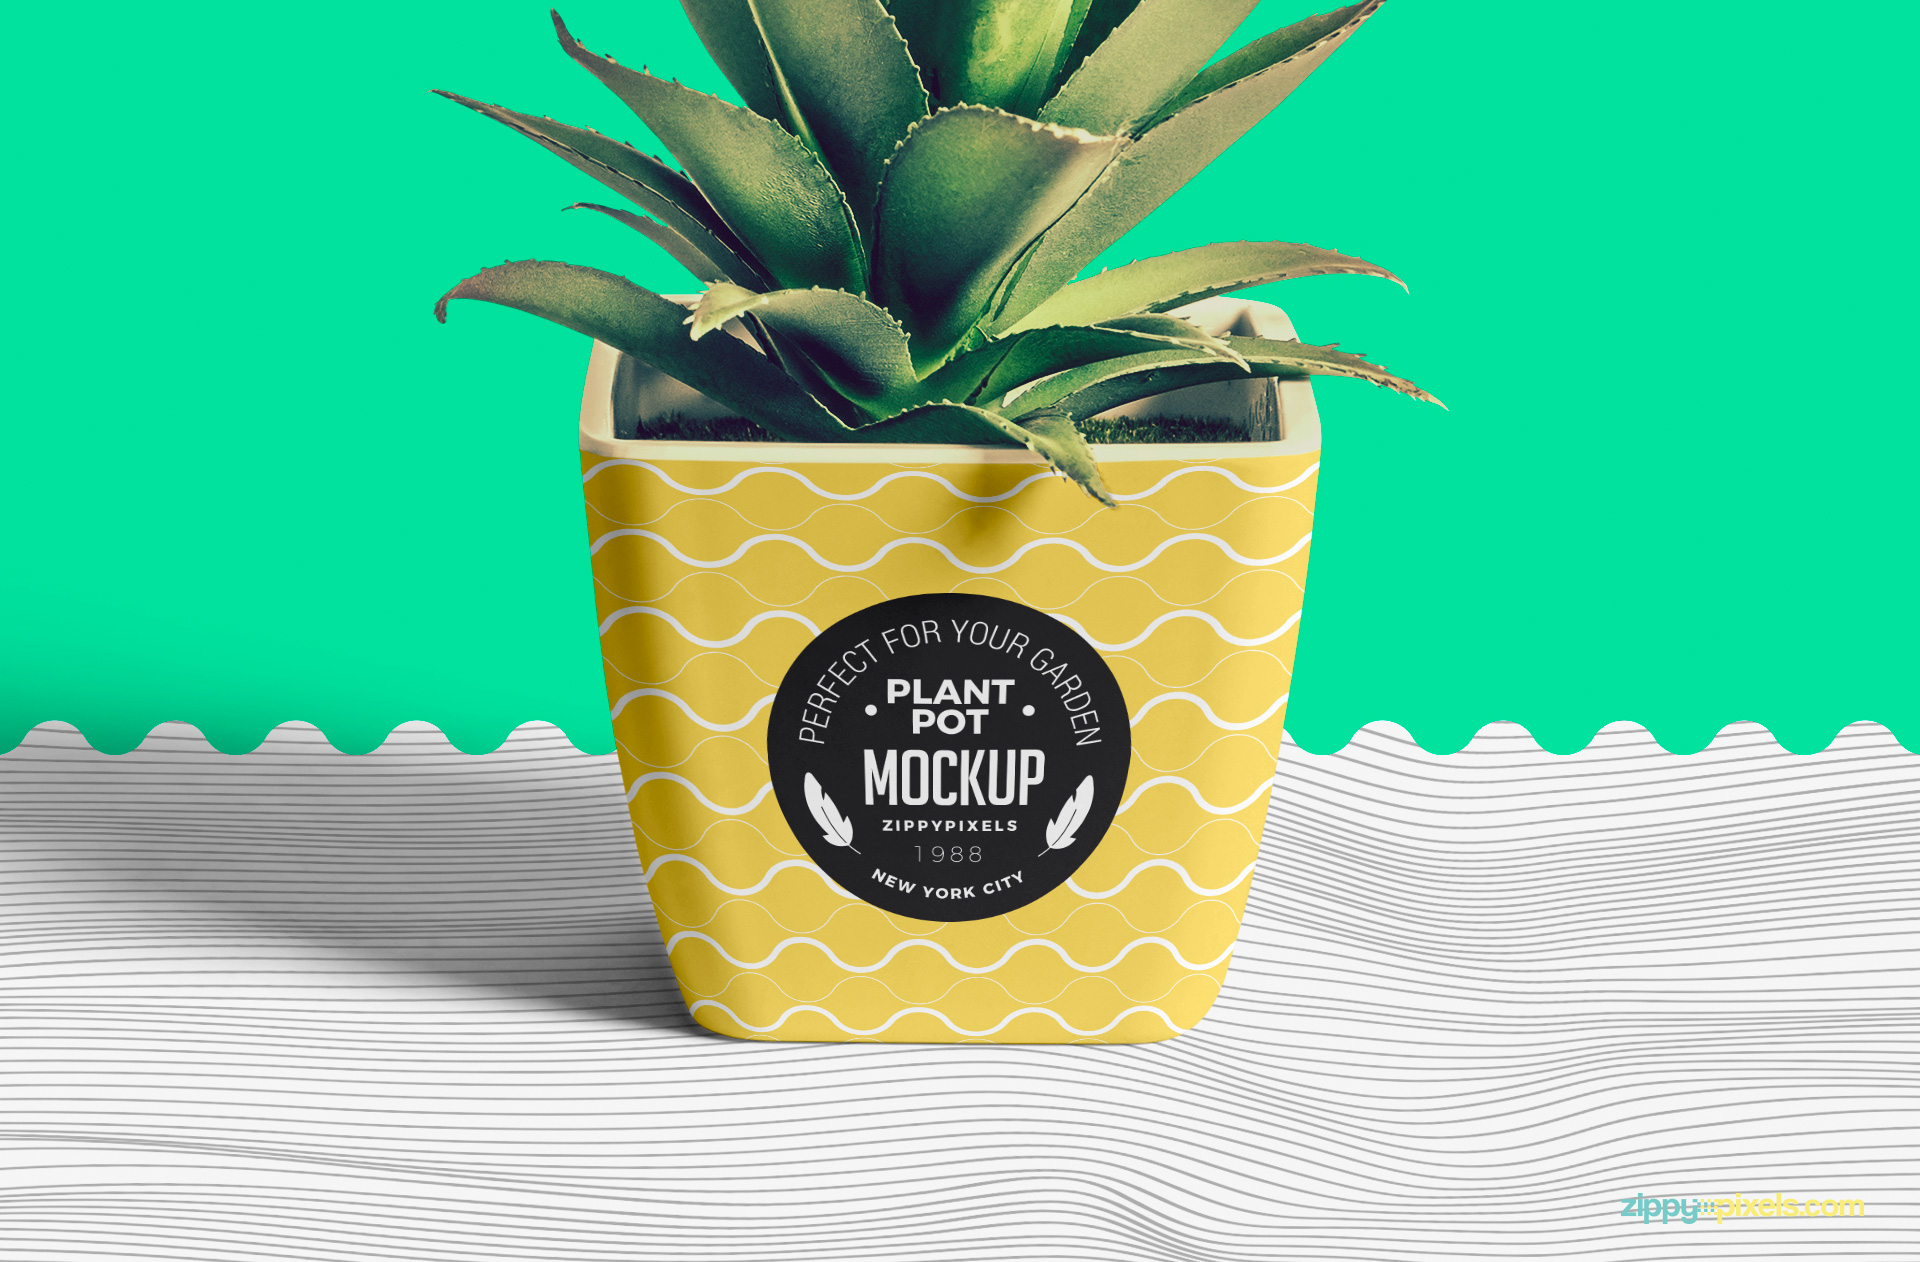 Stripped floor under this flower pot mockup is also customizable.